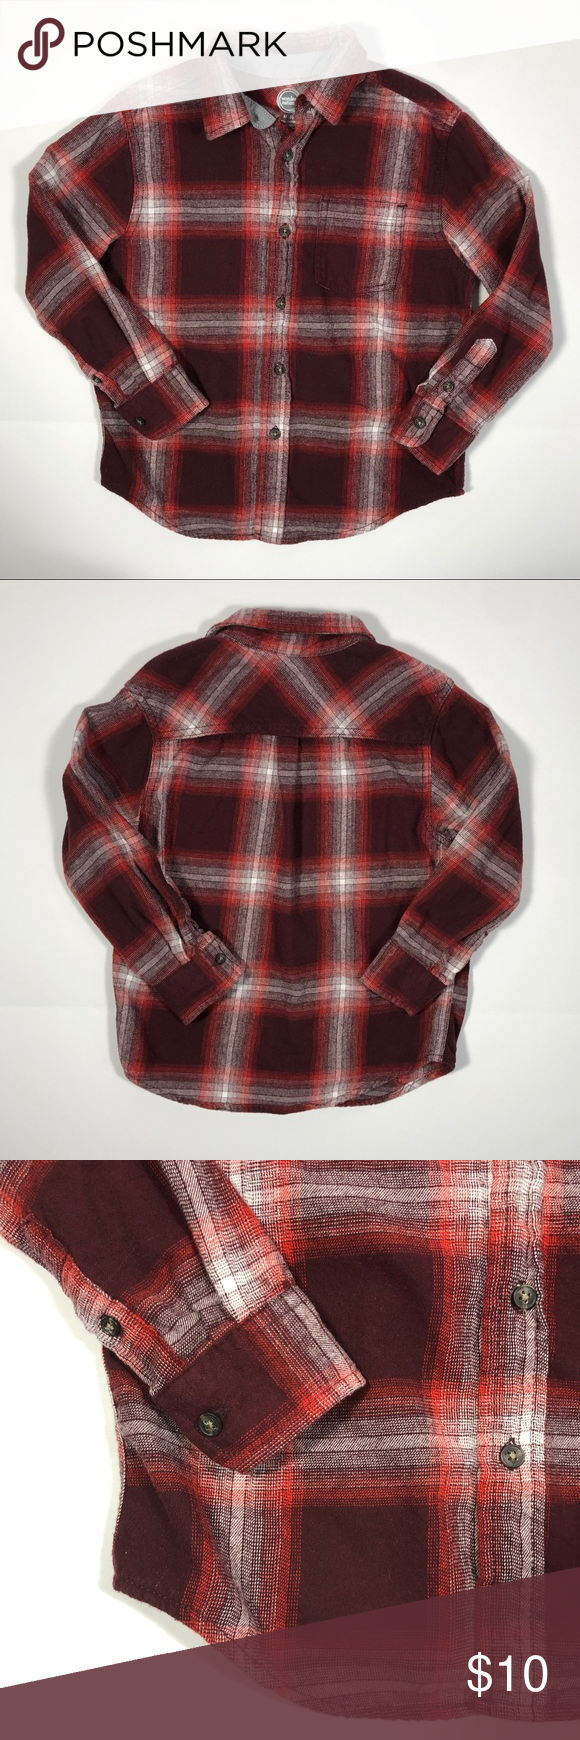 c0f734e07 Wonder Nation Boys Flannel Button Up Plaid Red Med Wonder Nation, Boys,  Flannel, Button-Up Shirt, Size Medium (8), Plaid, Red, Long Sleeve, One  Chest Pocket ...